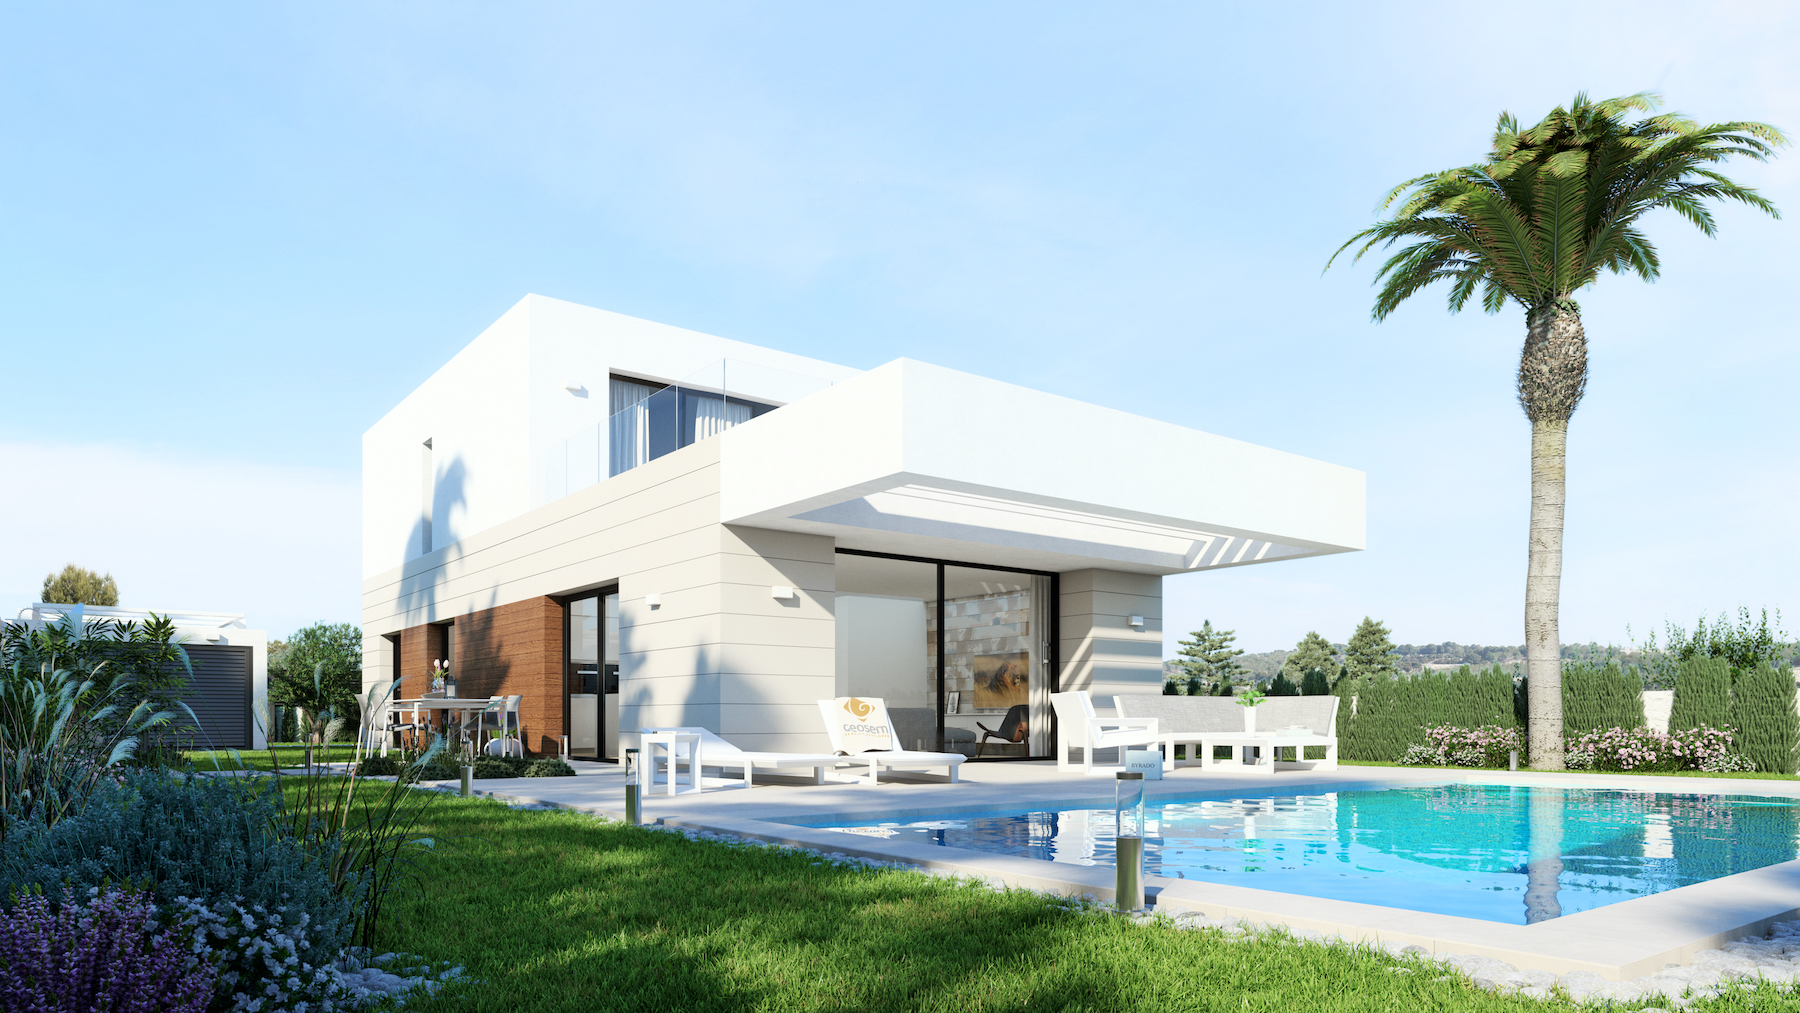 Detached 3 bedroom, 2 bath luxury villa in Los Montesinos